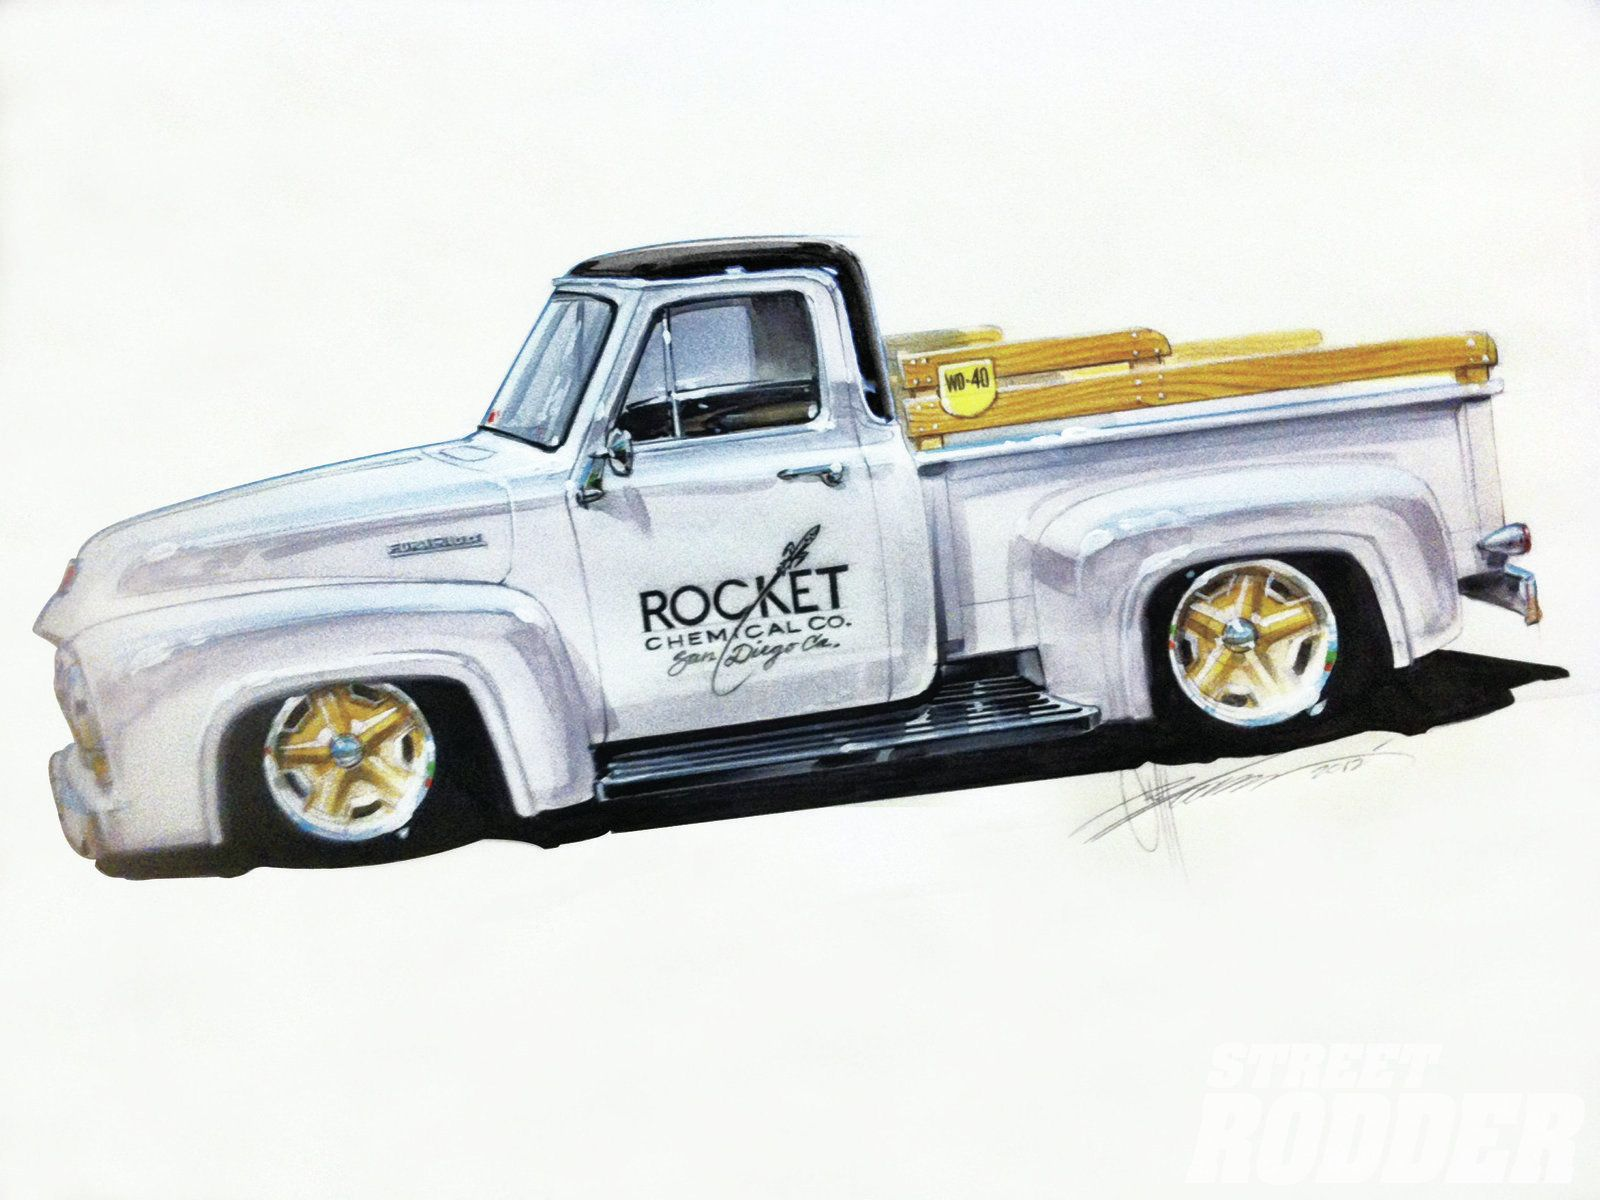 1956 chevy tattoo submited images pic2fly - Hot Rod Drawings Bing Images Renderings Pinterest Cars Ford And Ford Trucks